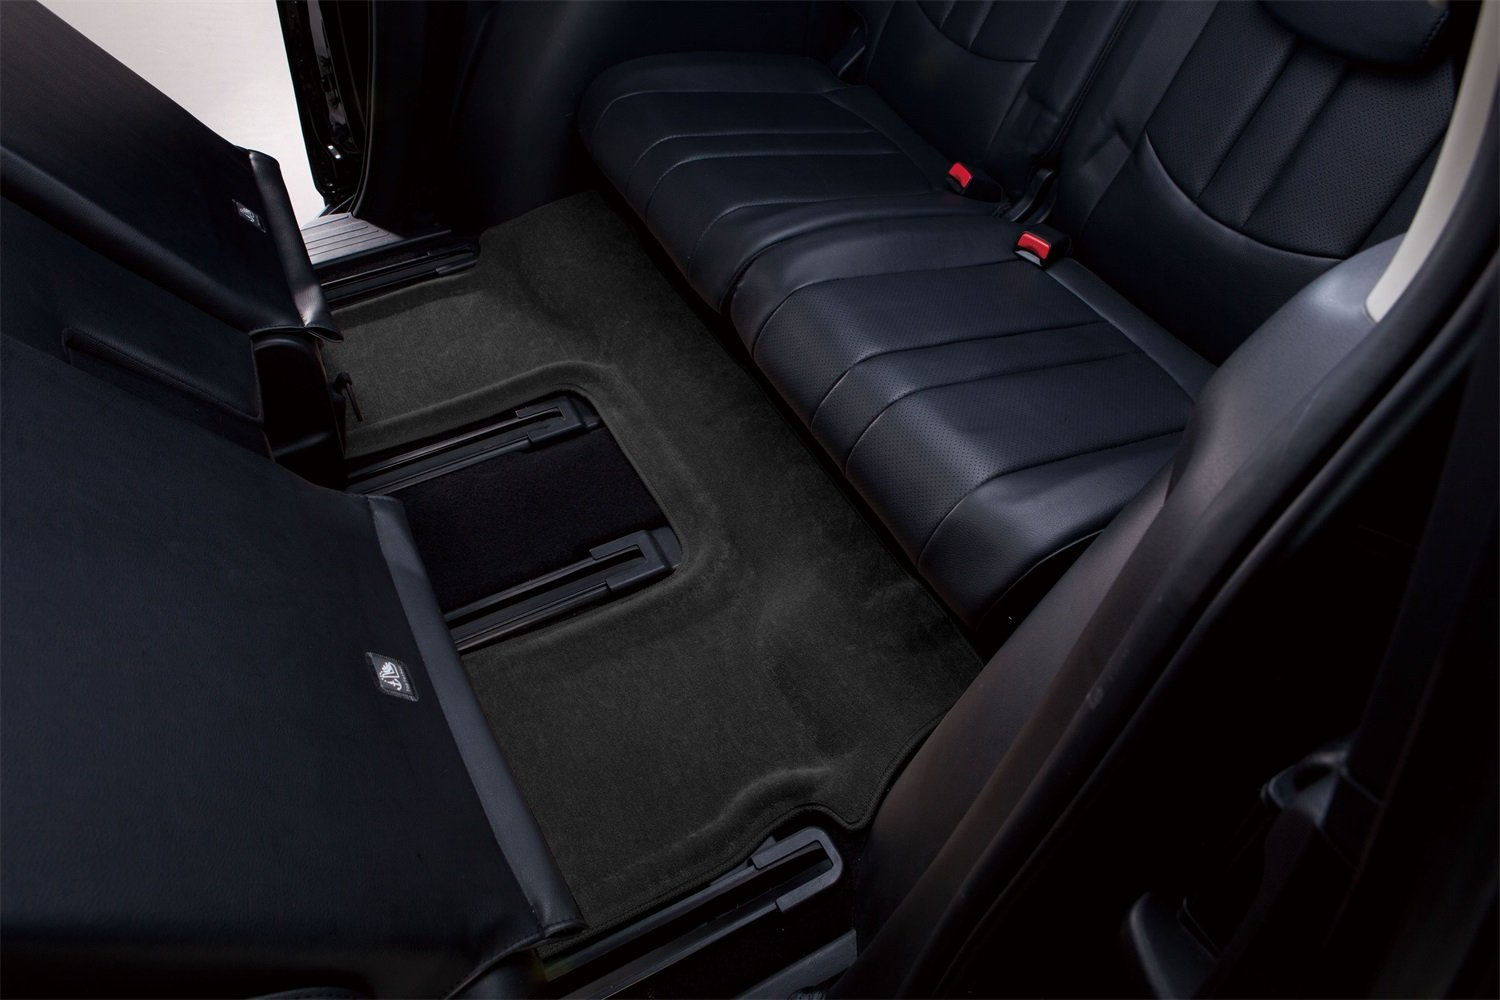 Classic Carpet 3D MAXpider Third Row Custom Fit All-Weather Floor Mat for Select Audi Q7 Models L1AD02632209 Black